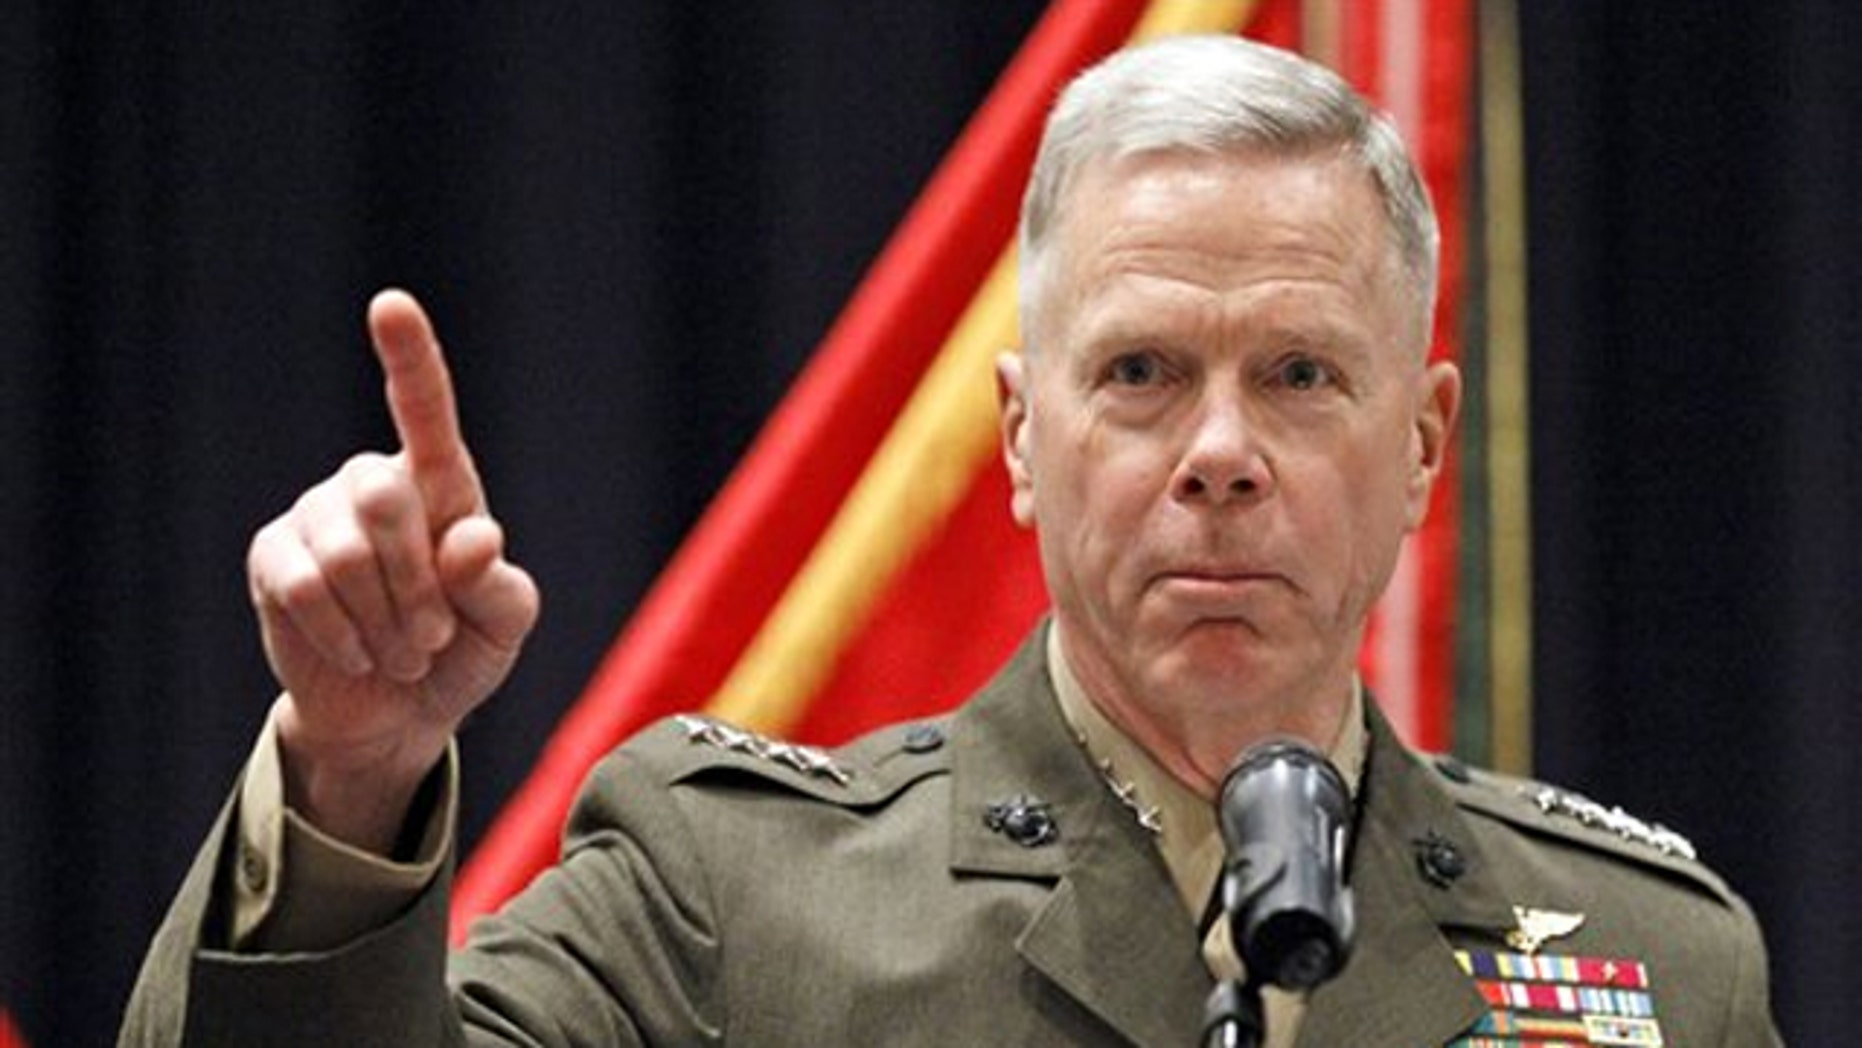 Dec. 1, 2010: Marine Corps Commandant Gen. James Amos speaks at the Marine Corps Barracks in Washington.